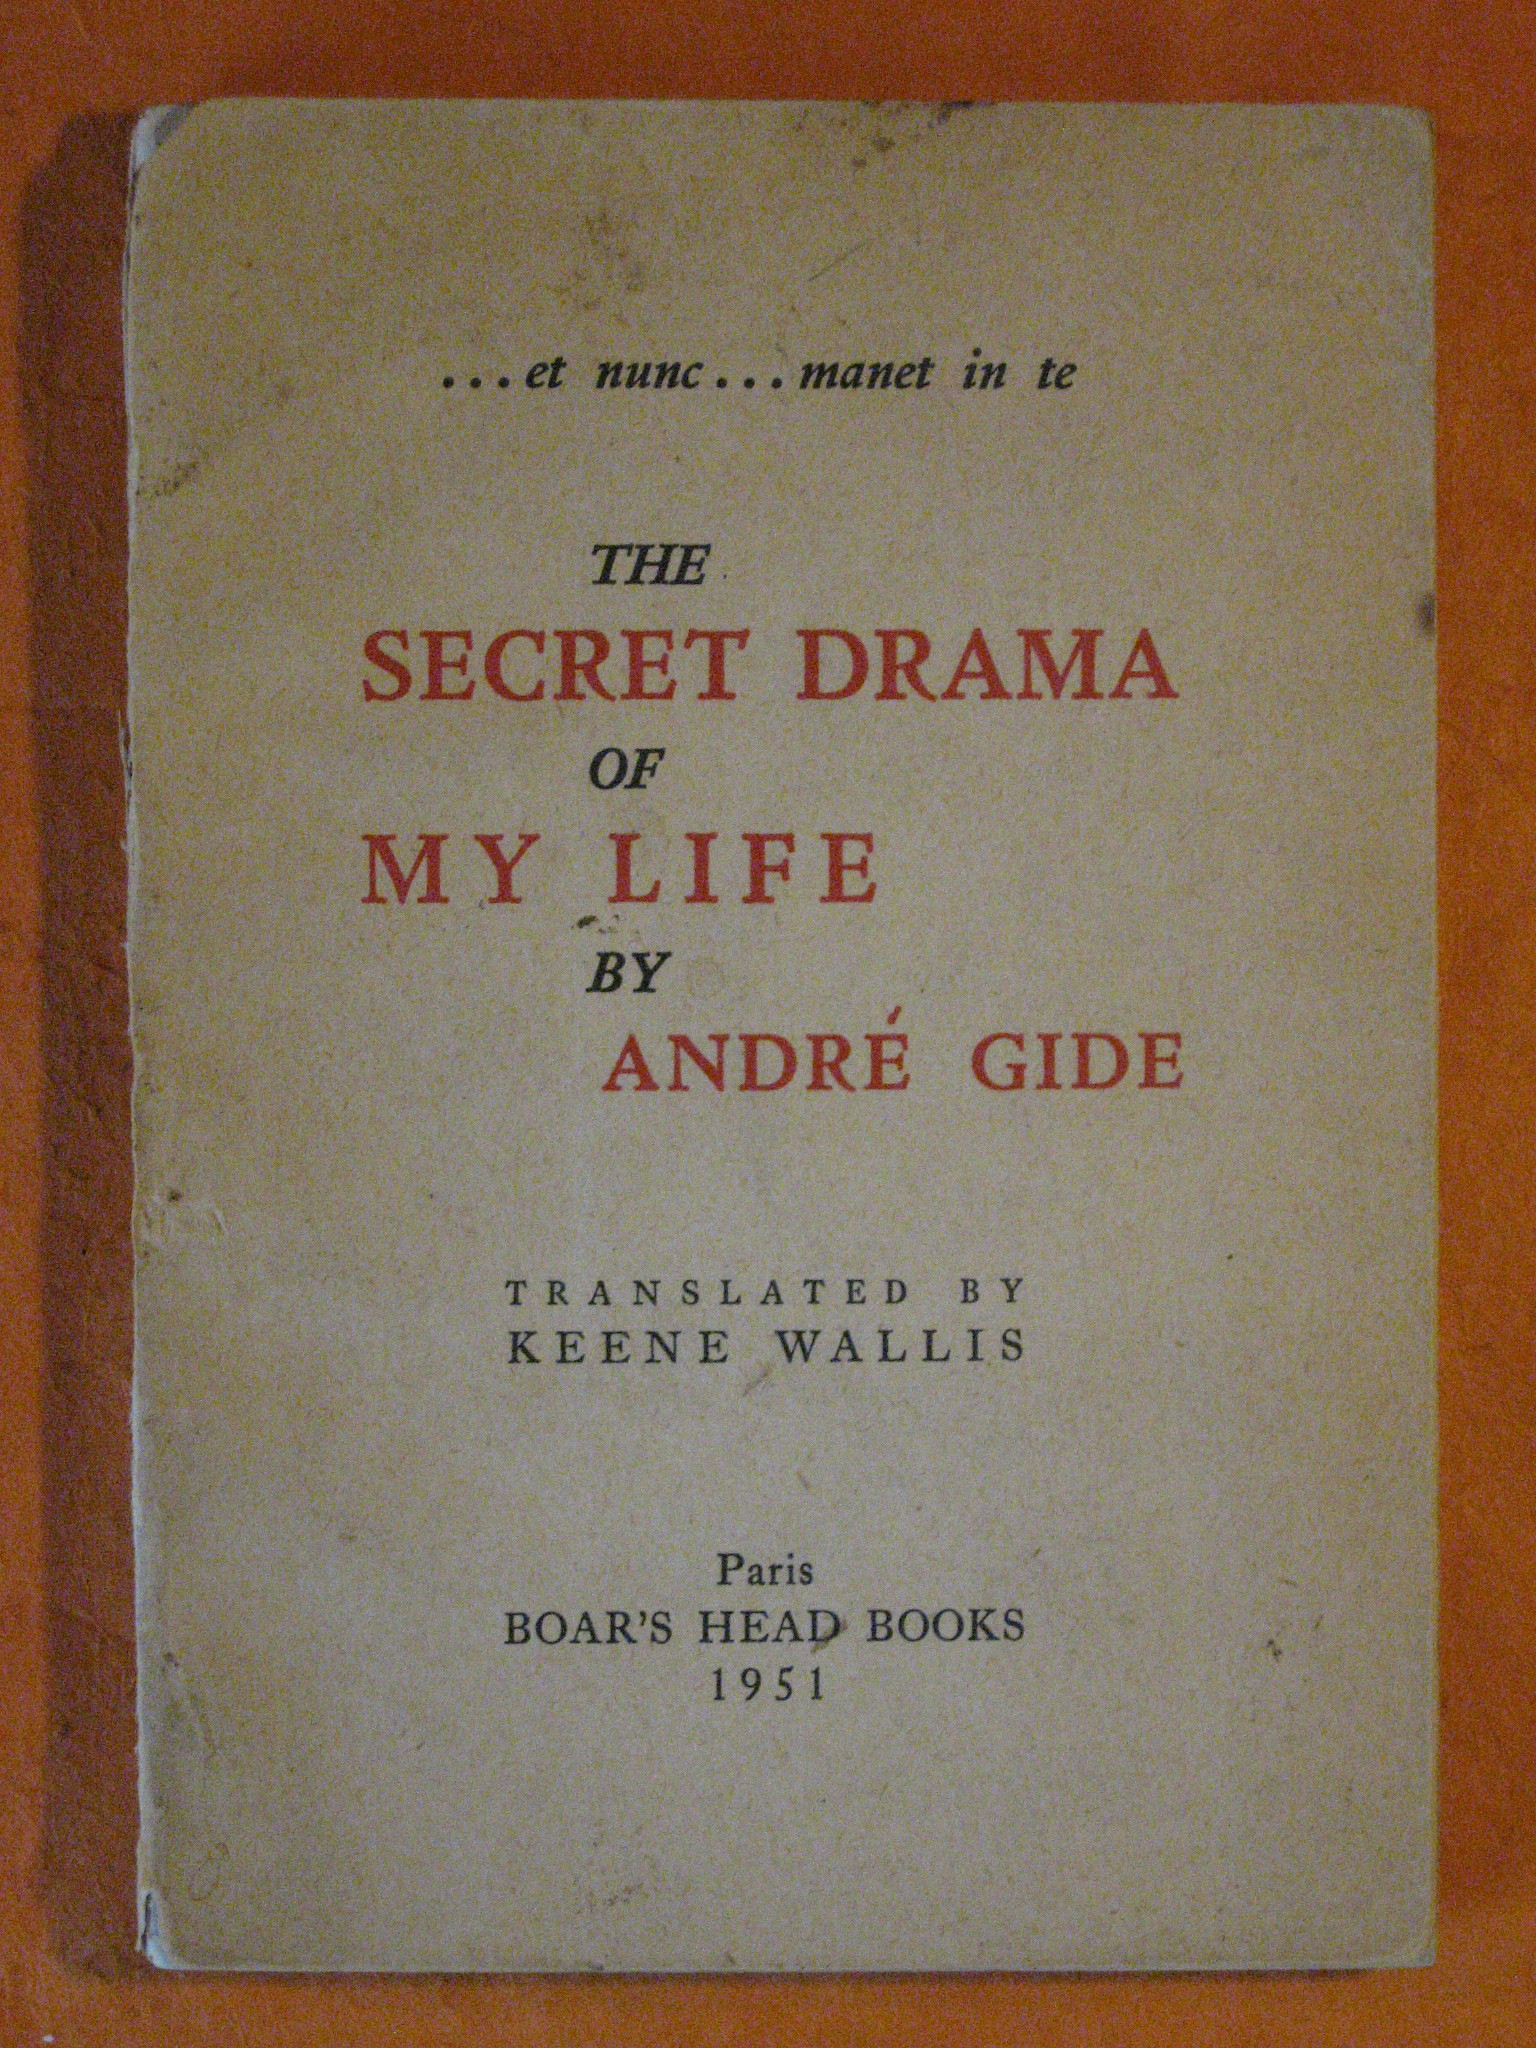 The Secret Drama of My Life, Gide, Andre; Wallis, Keene (translator)